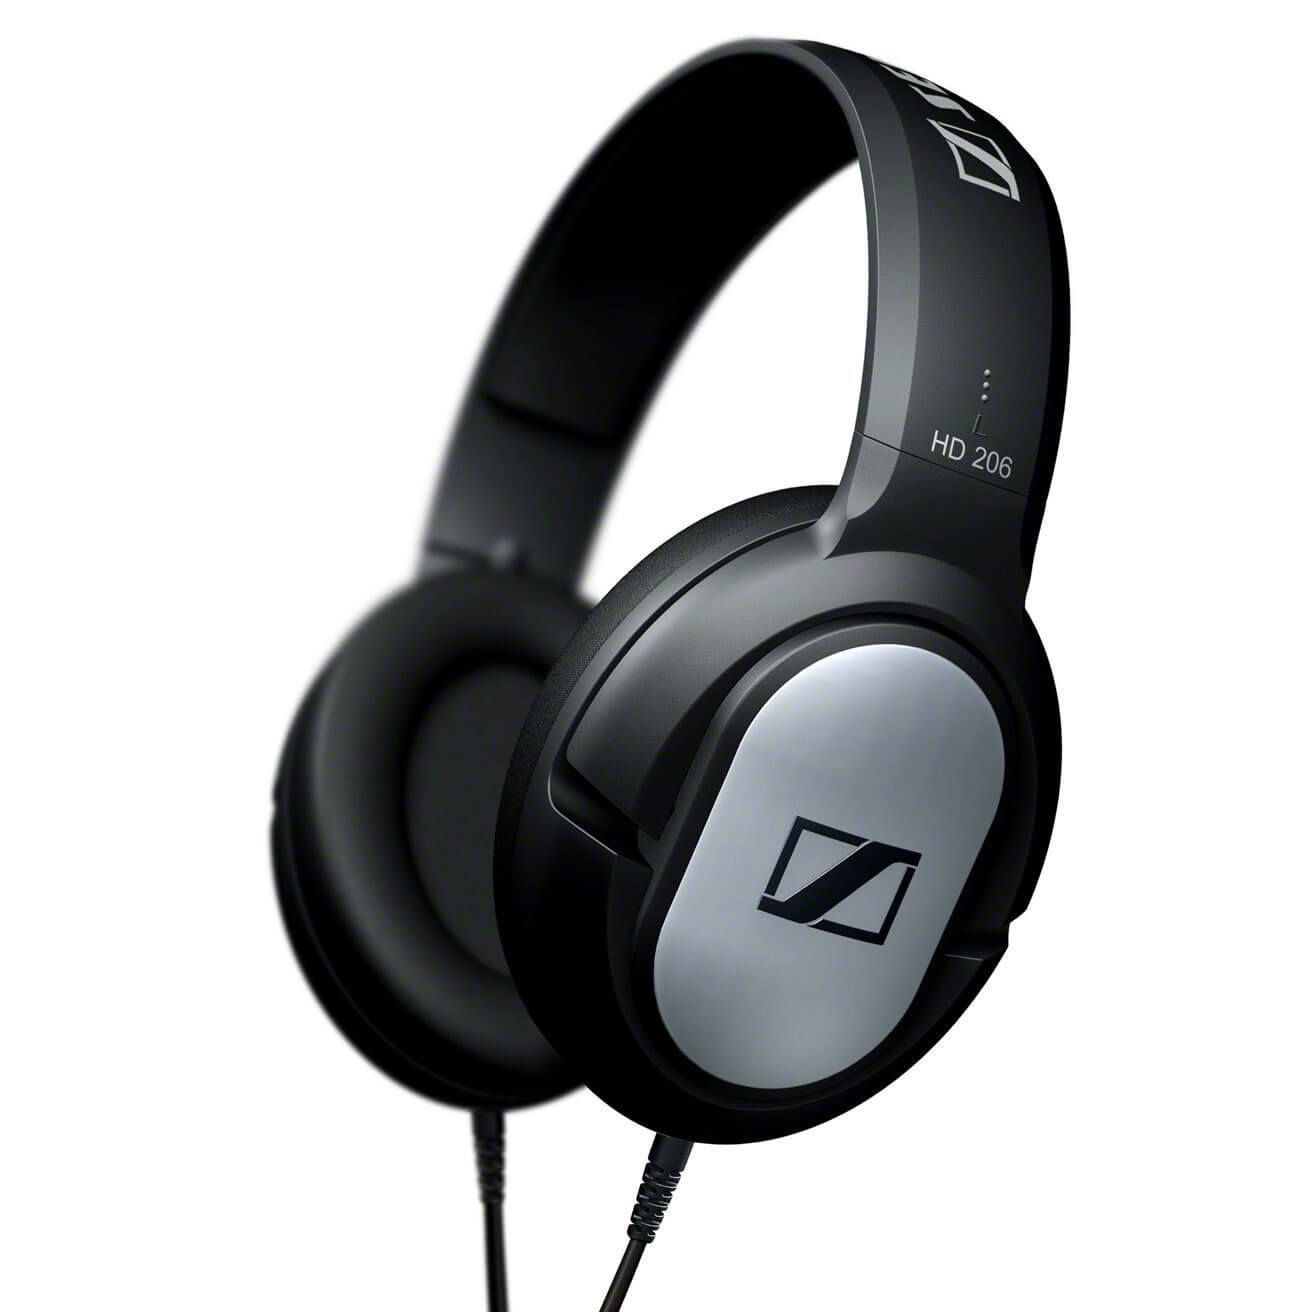 altoparlanti - sennheiser - Top 5 dispositivi audio disponibili ora su Amazon under 40€